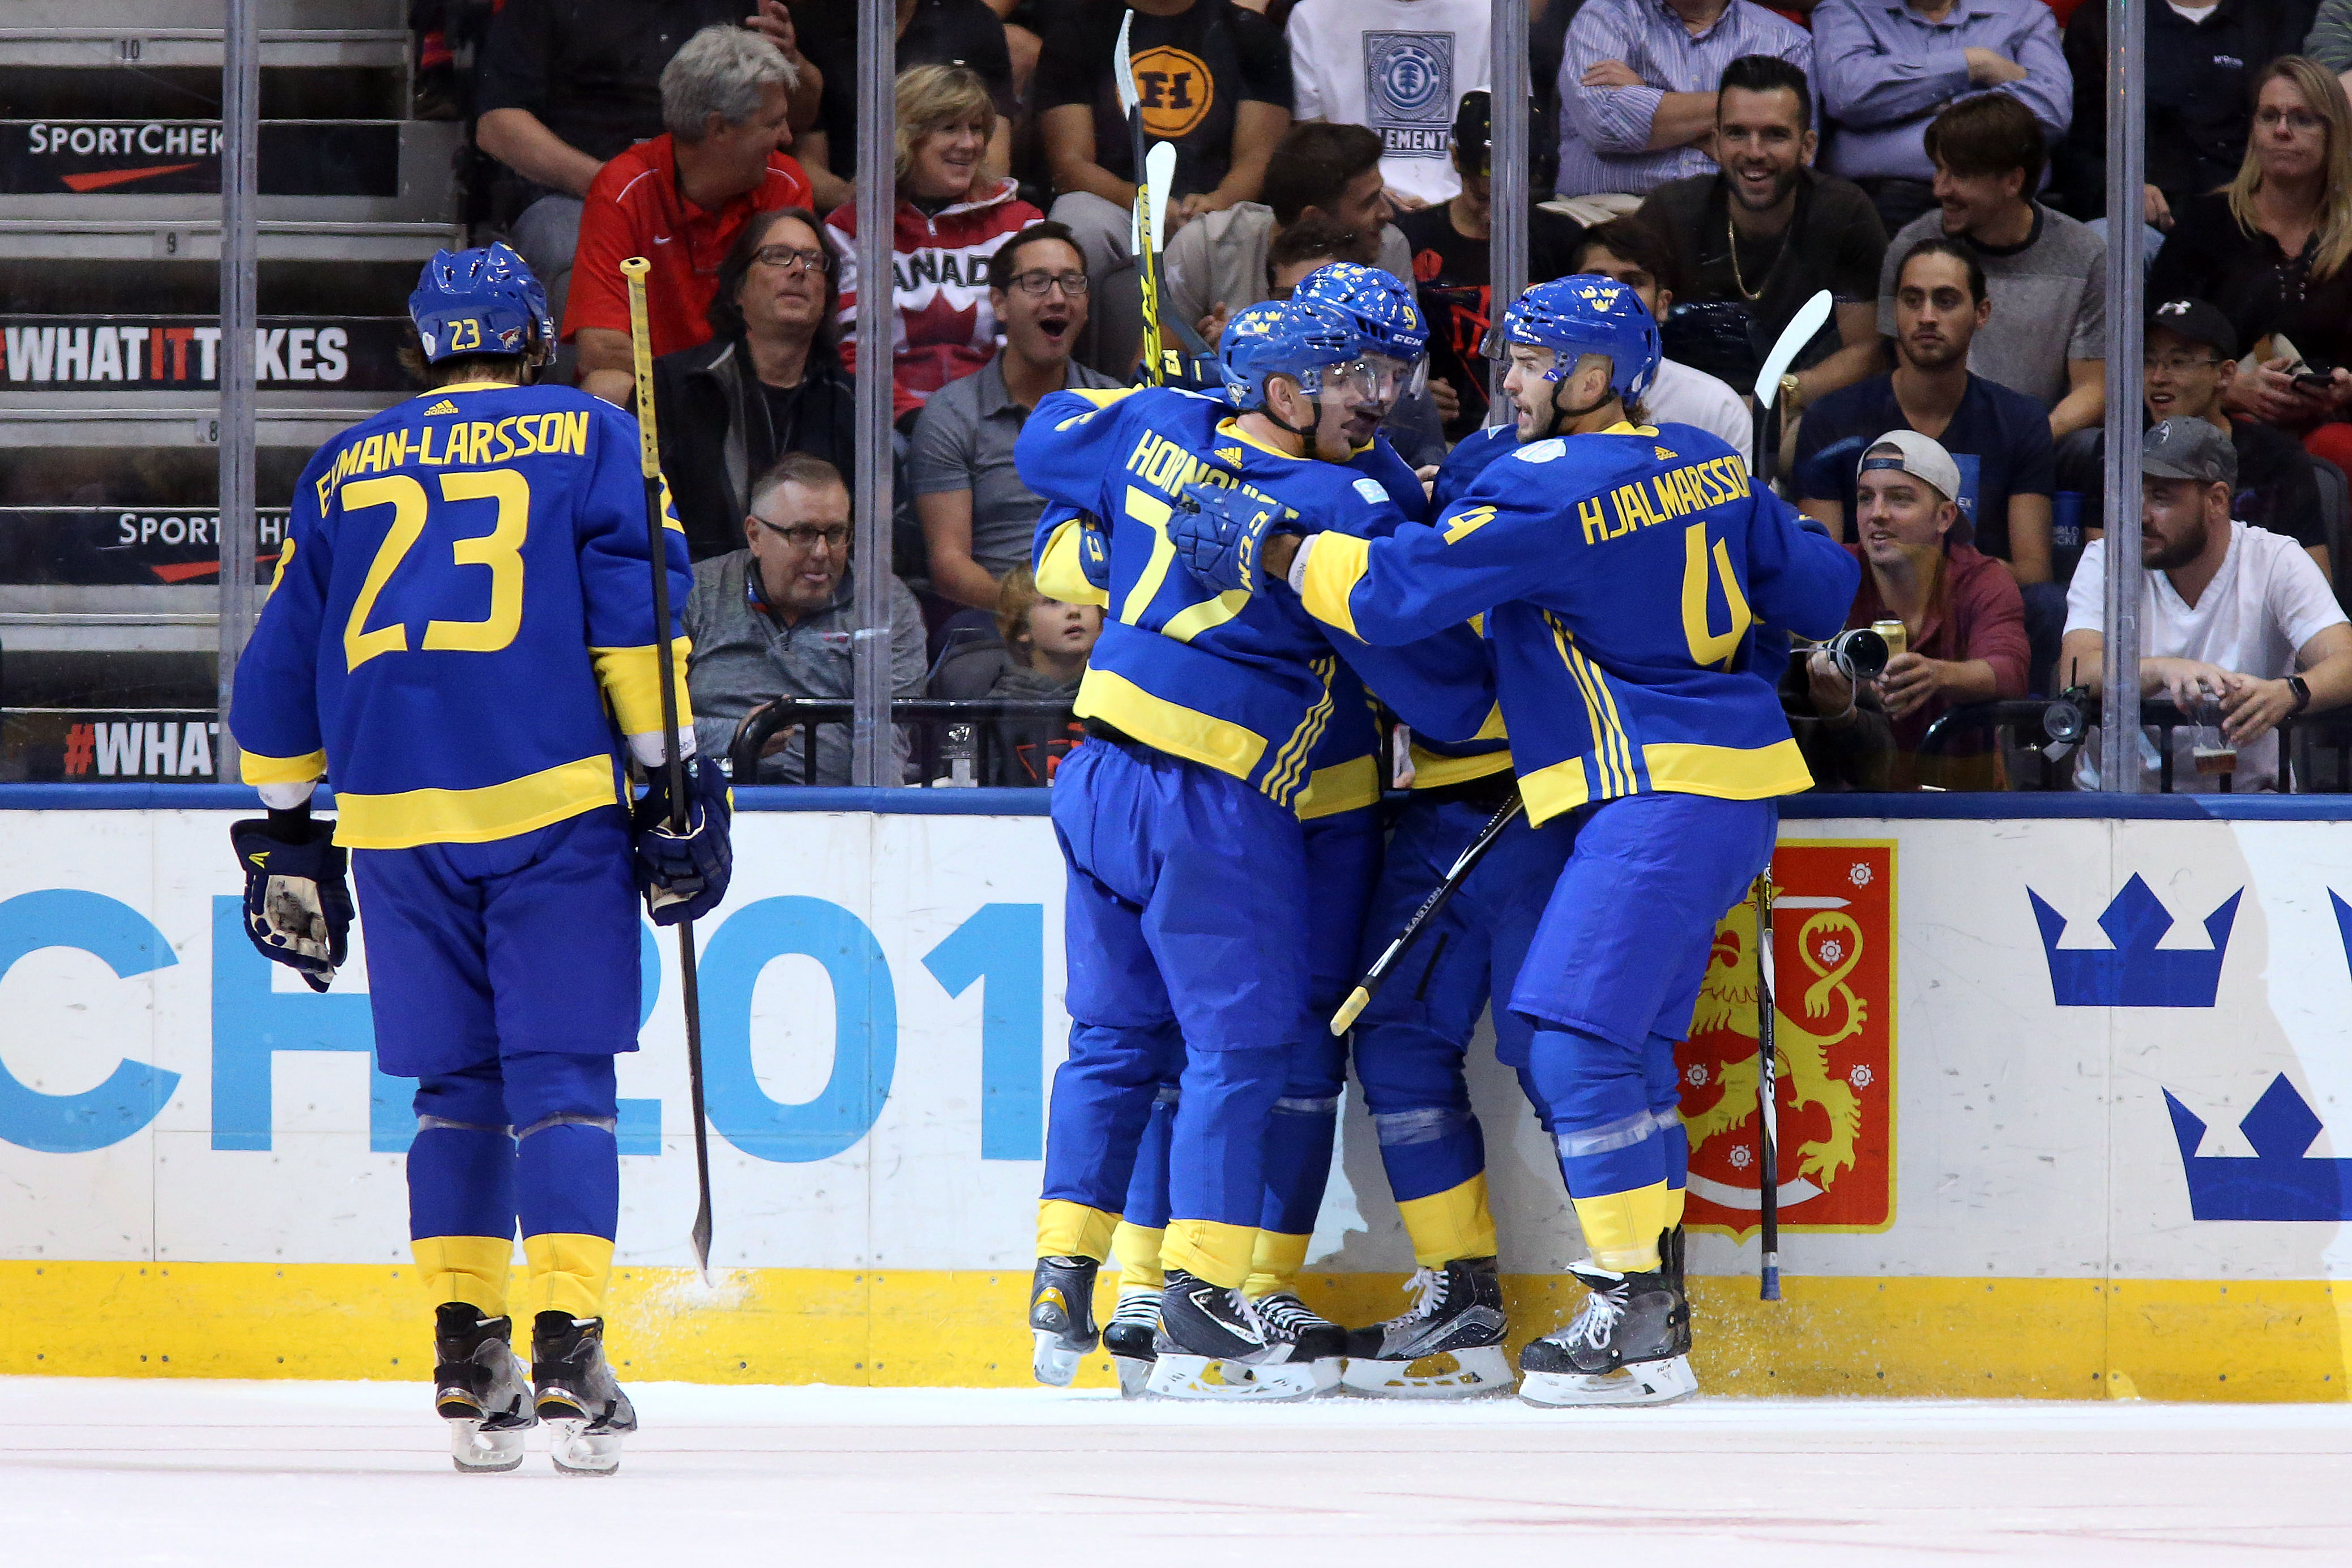 9556258-hockey-world-cup-of-hockey-team-north-america-vs-team-sweden